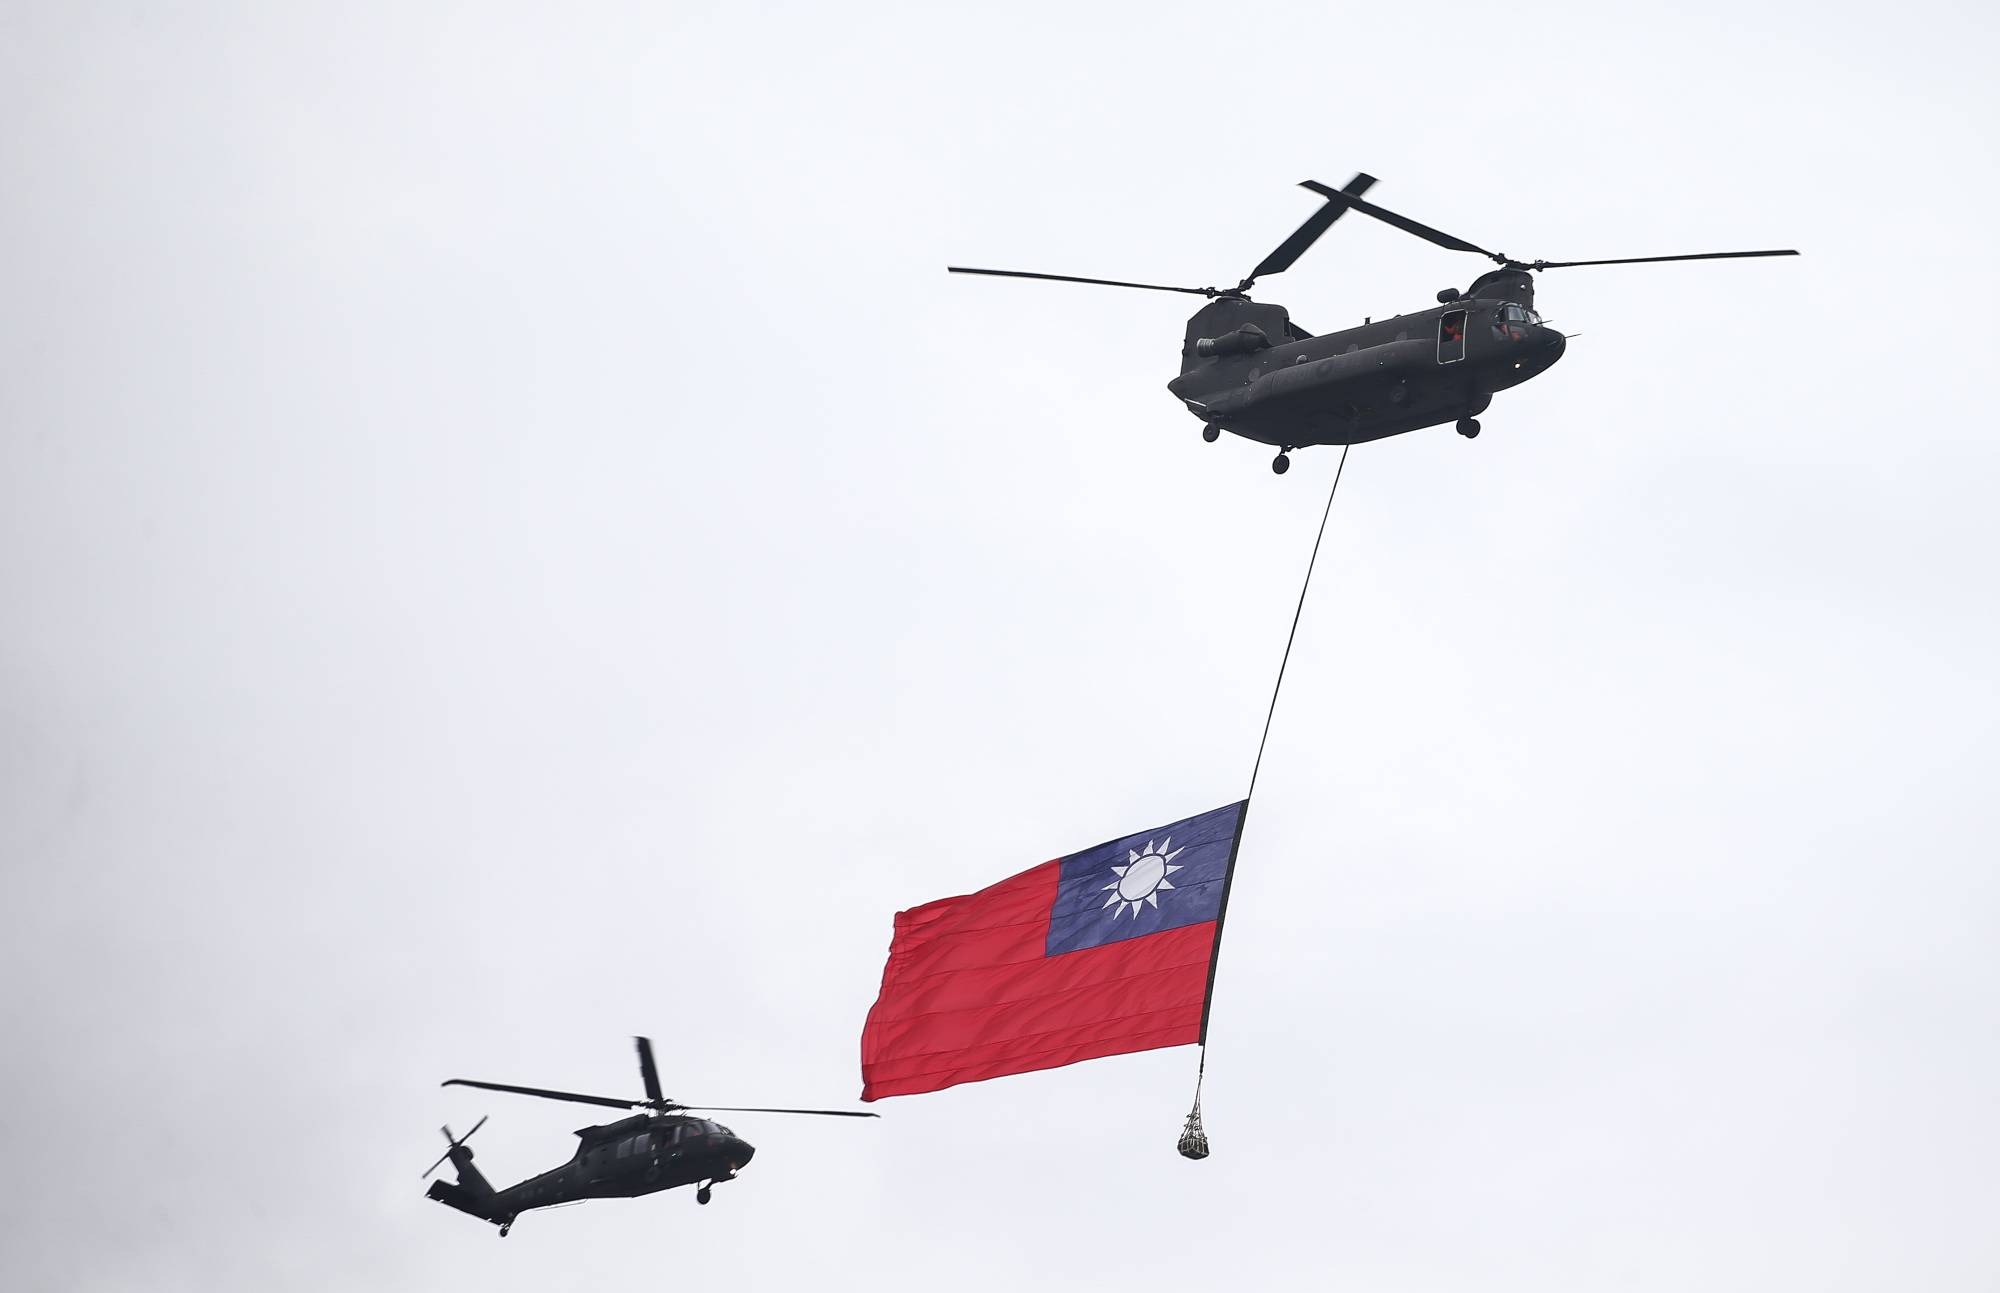 A helicopter flies overhead with a Taiwanese flag during National Day celebrations in Taipei on Saturday. Taiwan has labeled new spying accusations by China as fake news after Chinese state television aired a program showing a Taiwanese academic arrested in China on national security grounds. | BLOOMBERG